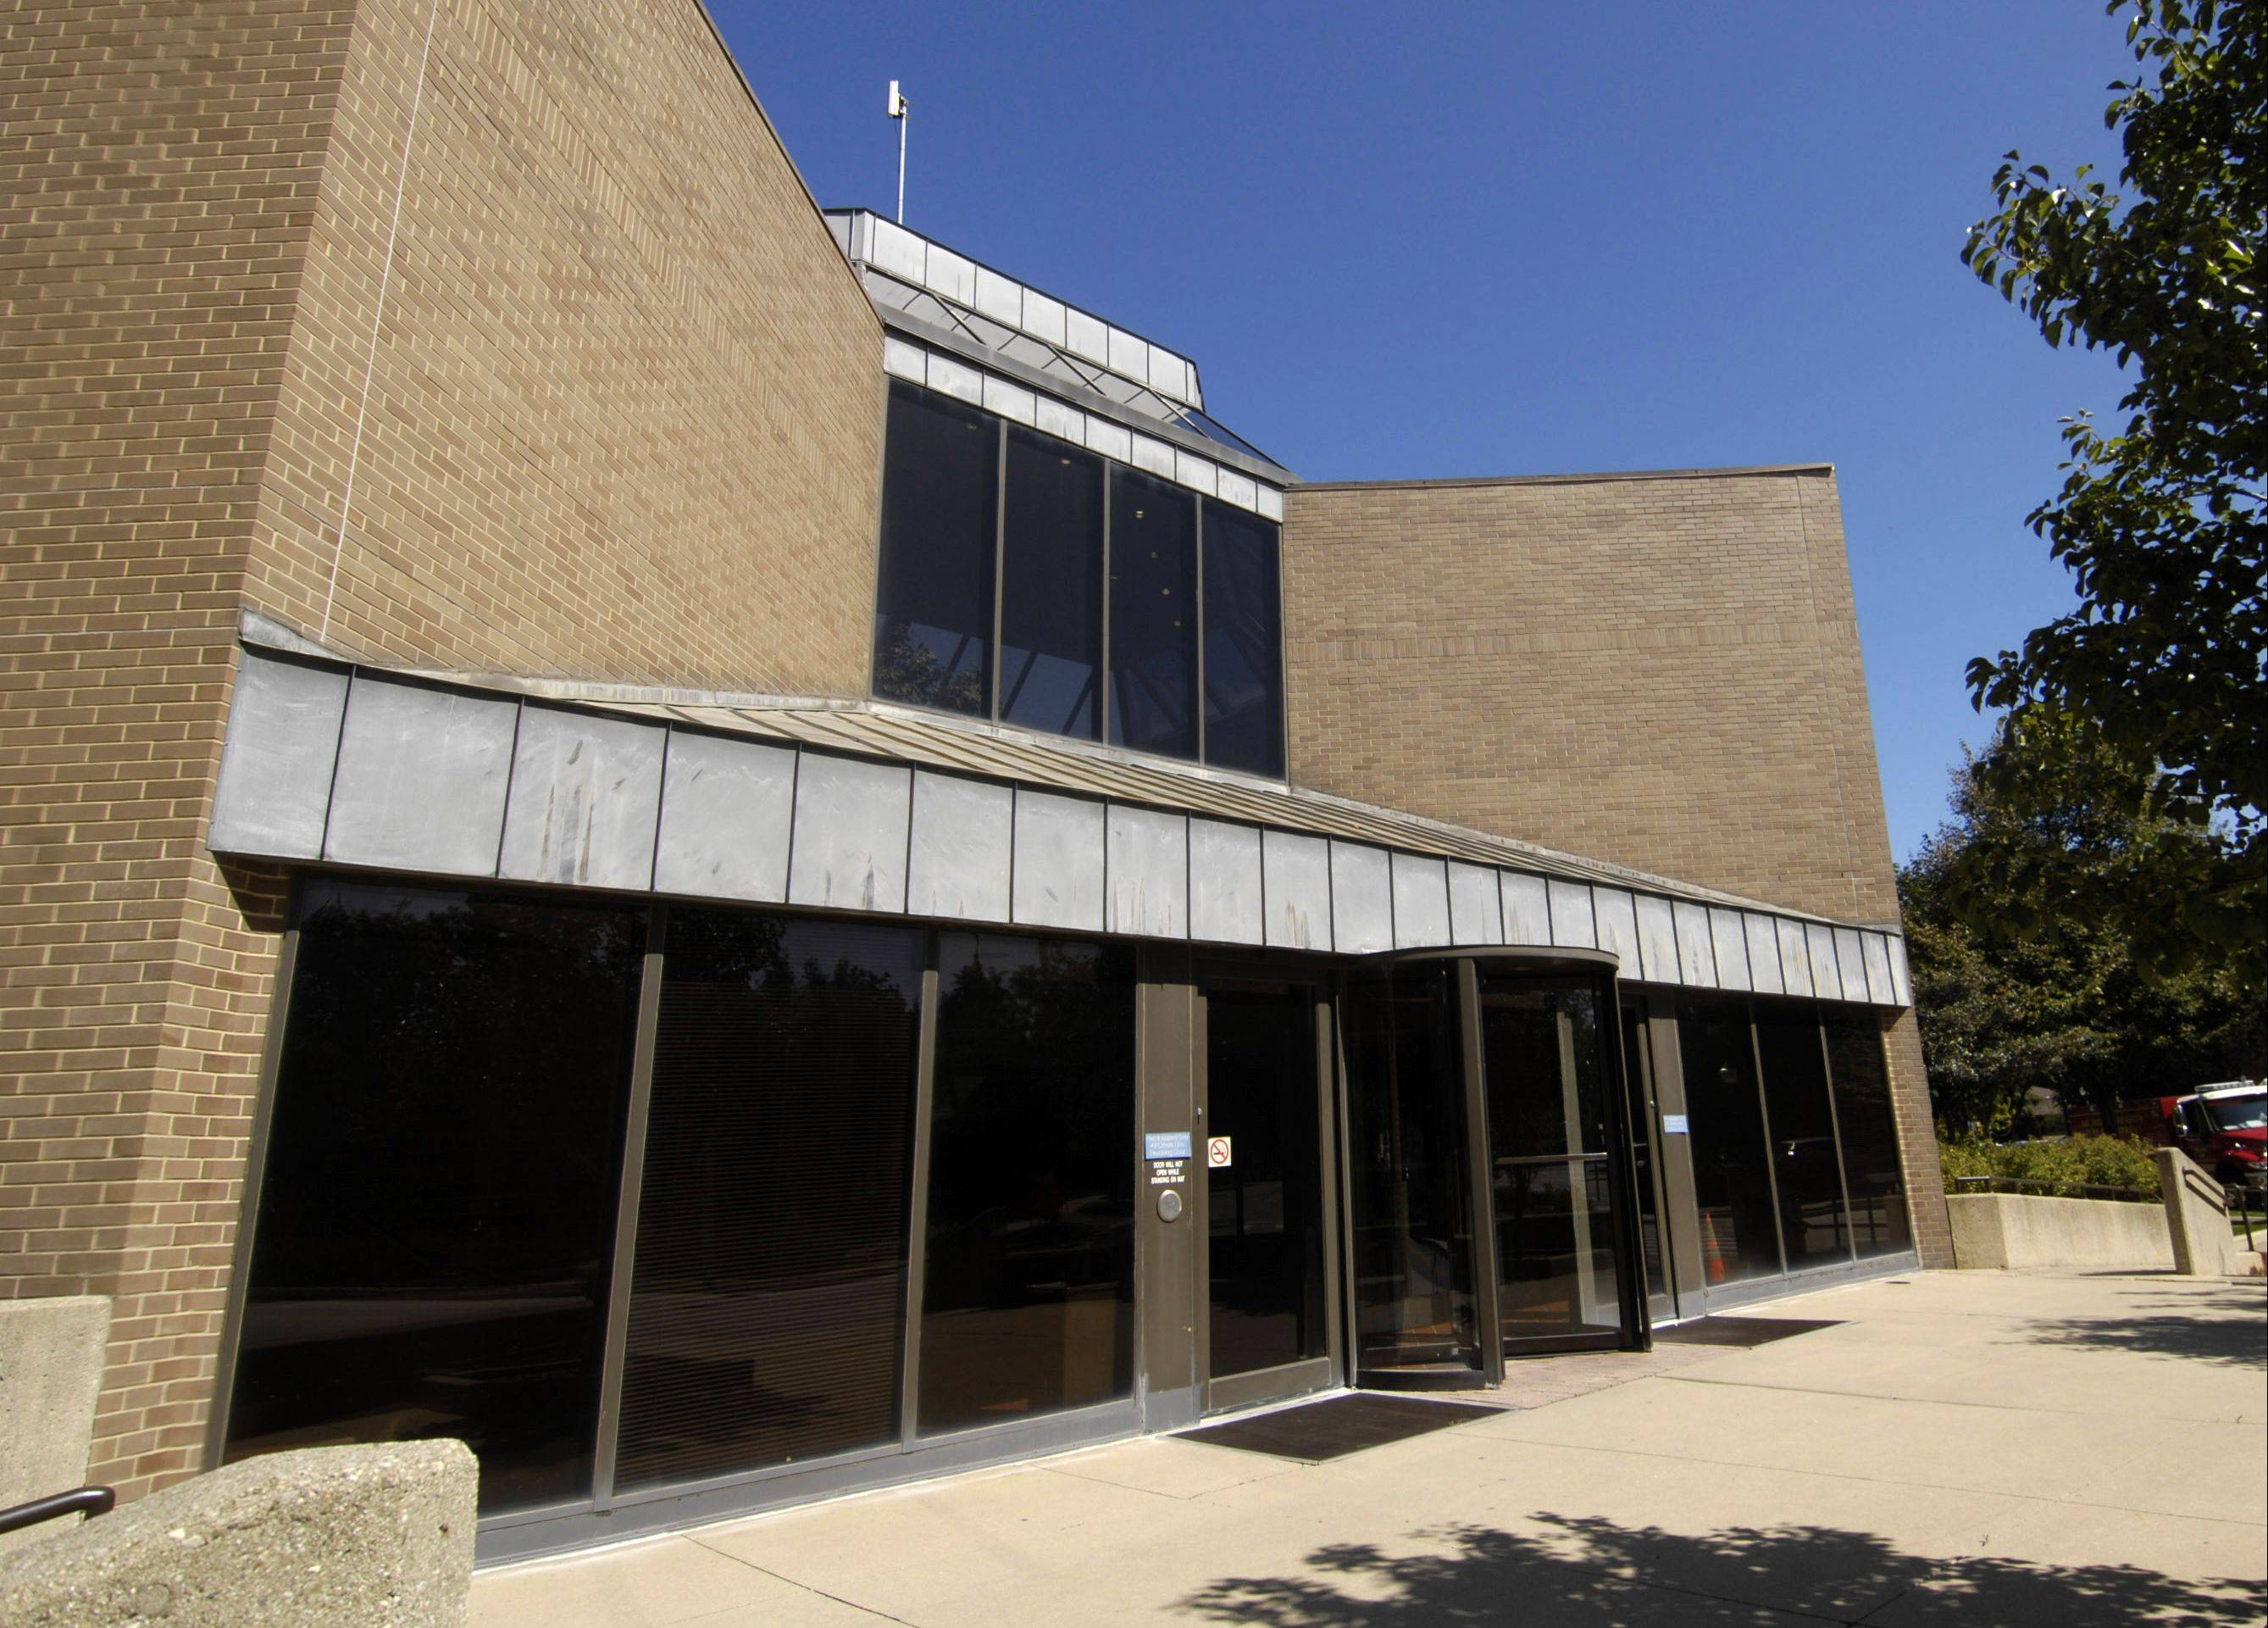 Arlington Heights officials say their village's police station, first opened in 1978, is out of date and not up to the industry standards. Village leaders hope to have a new or renovated station operational no later than 2020.